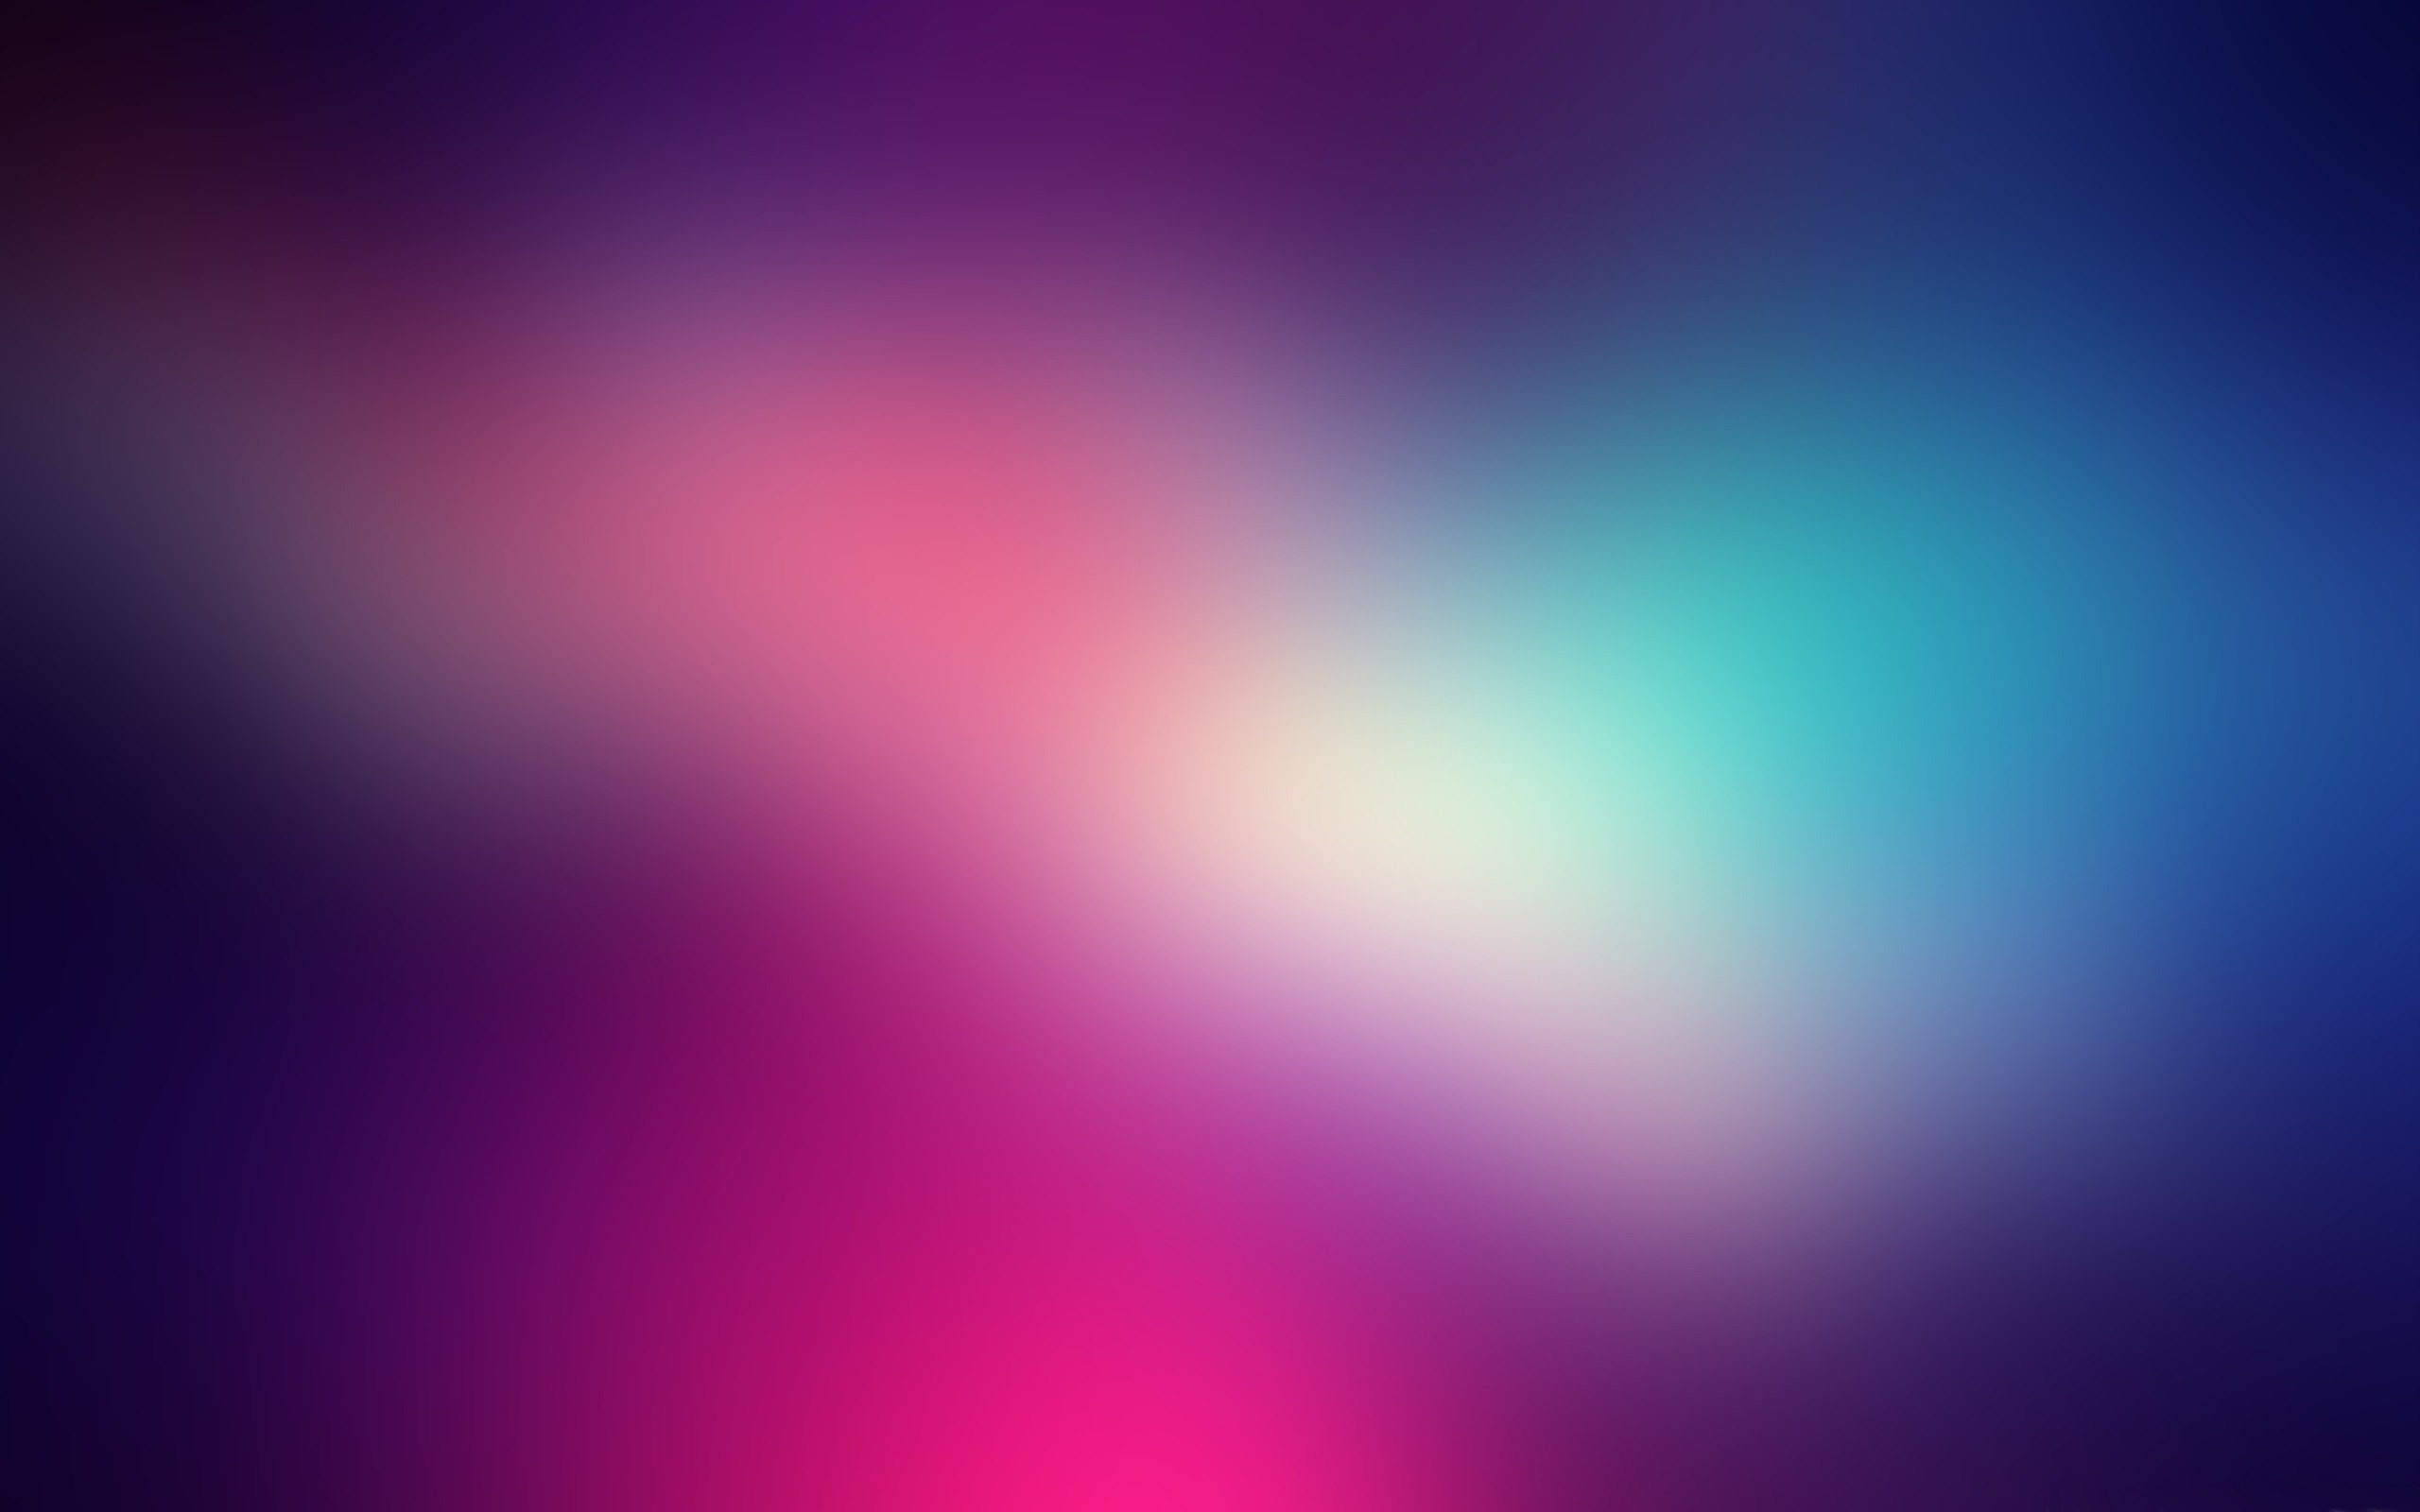 IOS 7 Wallpaper Abstract